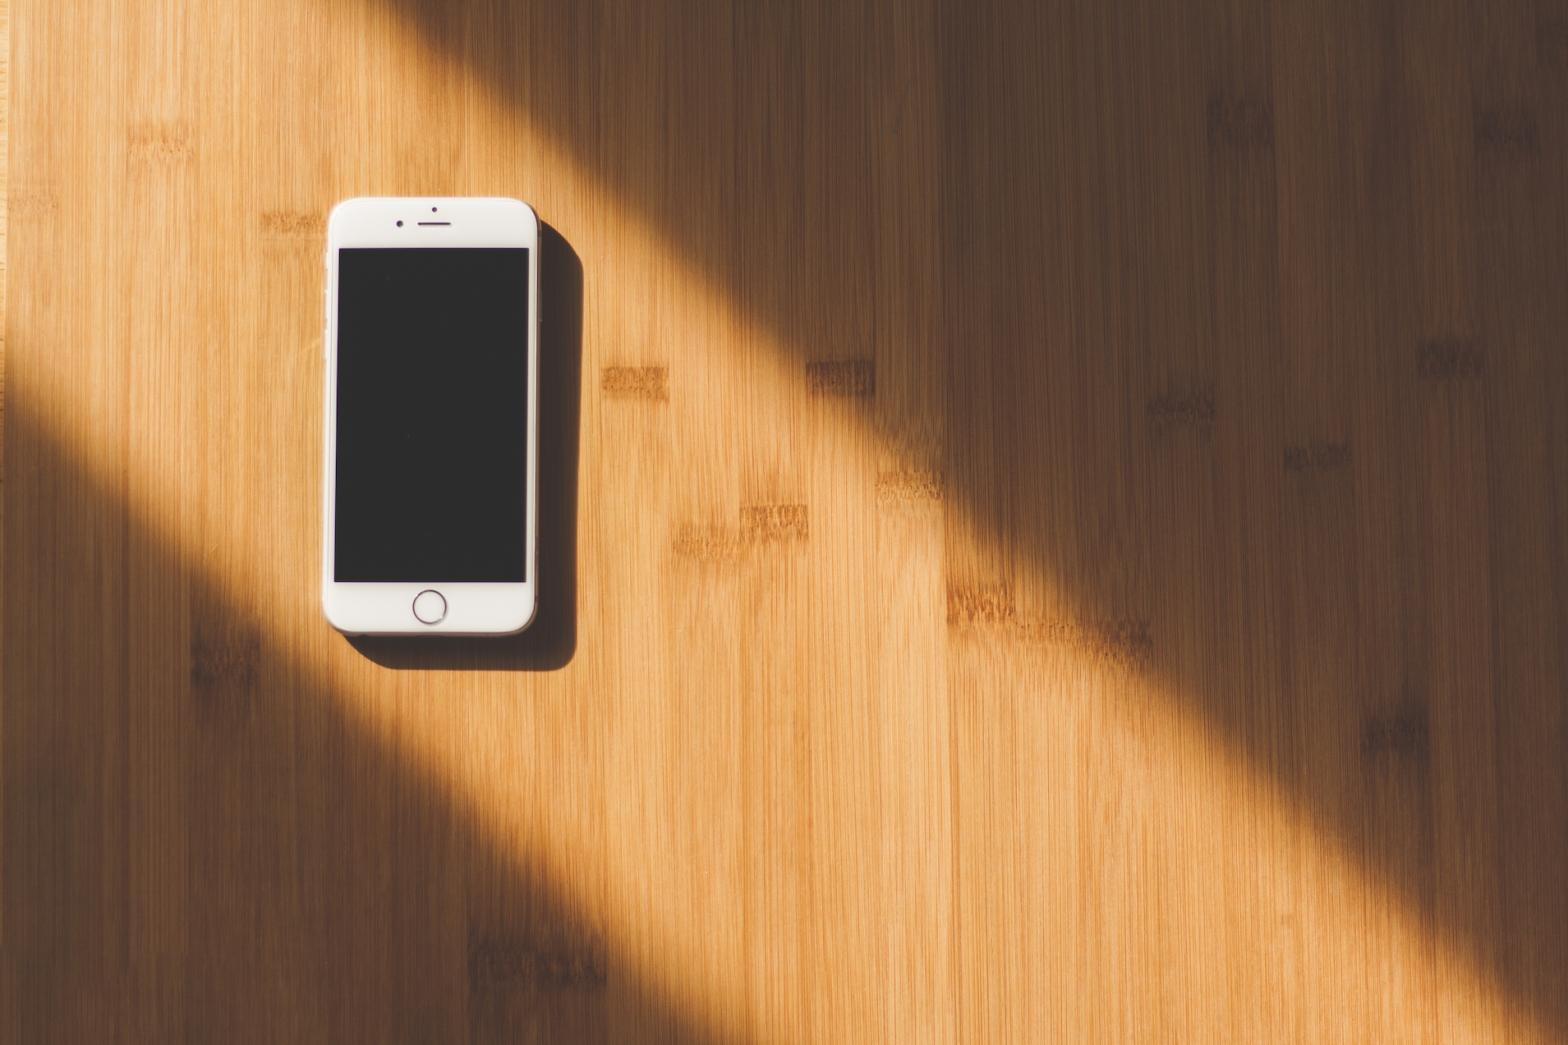 iPhone on a wood table